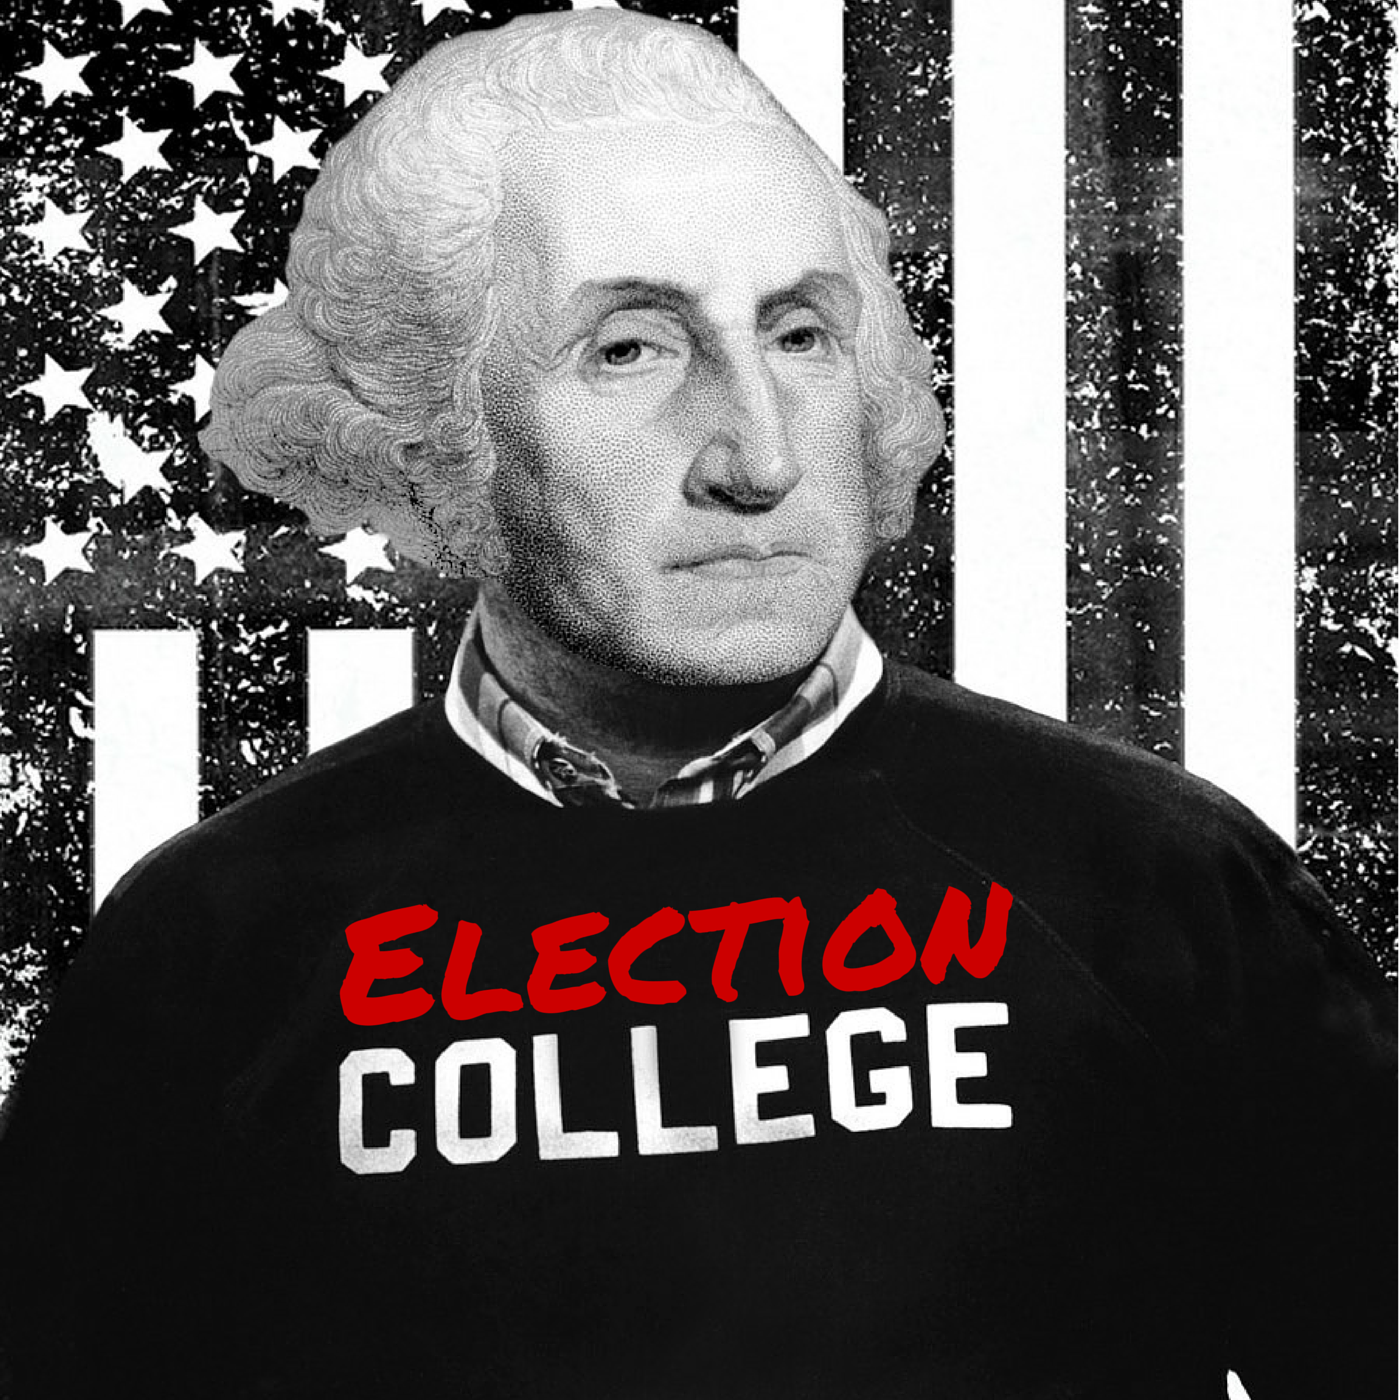 Martin Van Buren - Part 2 | Episode #178 | Election College: United States Presidential Election History